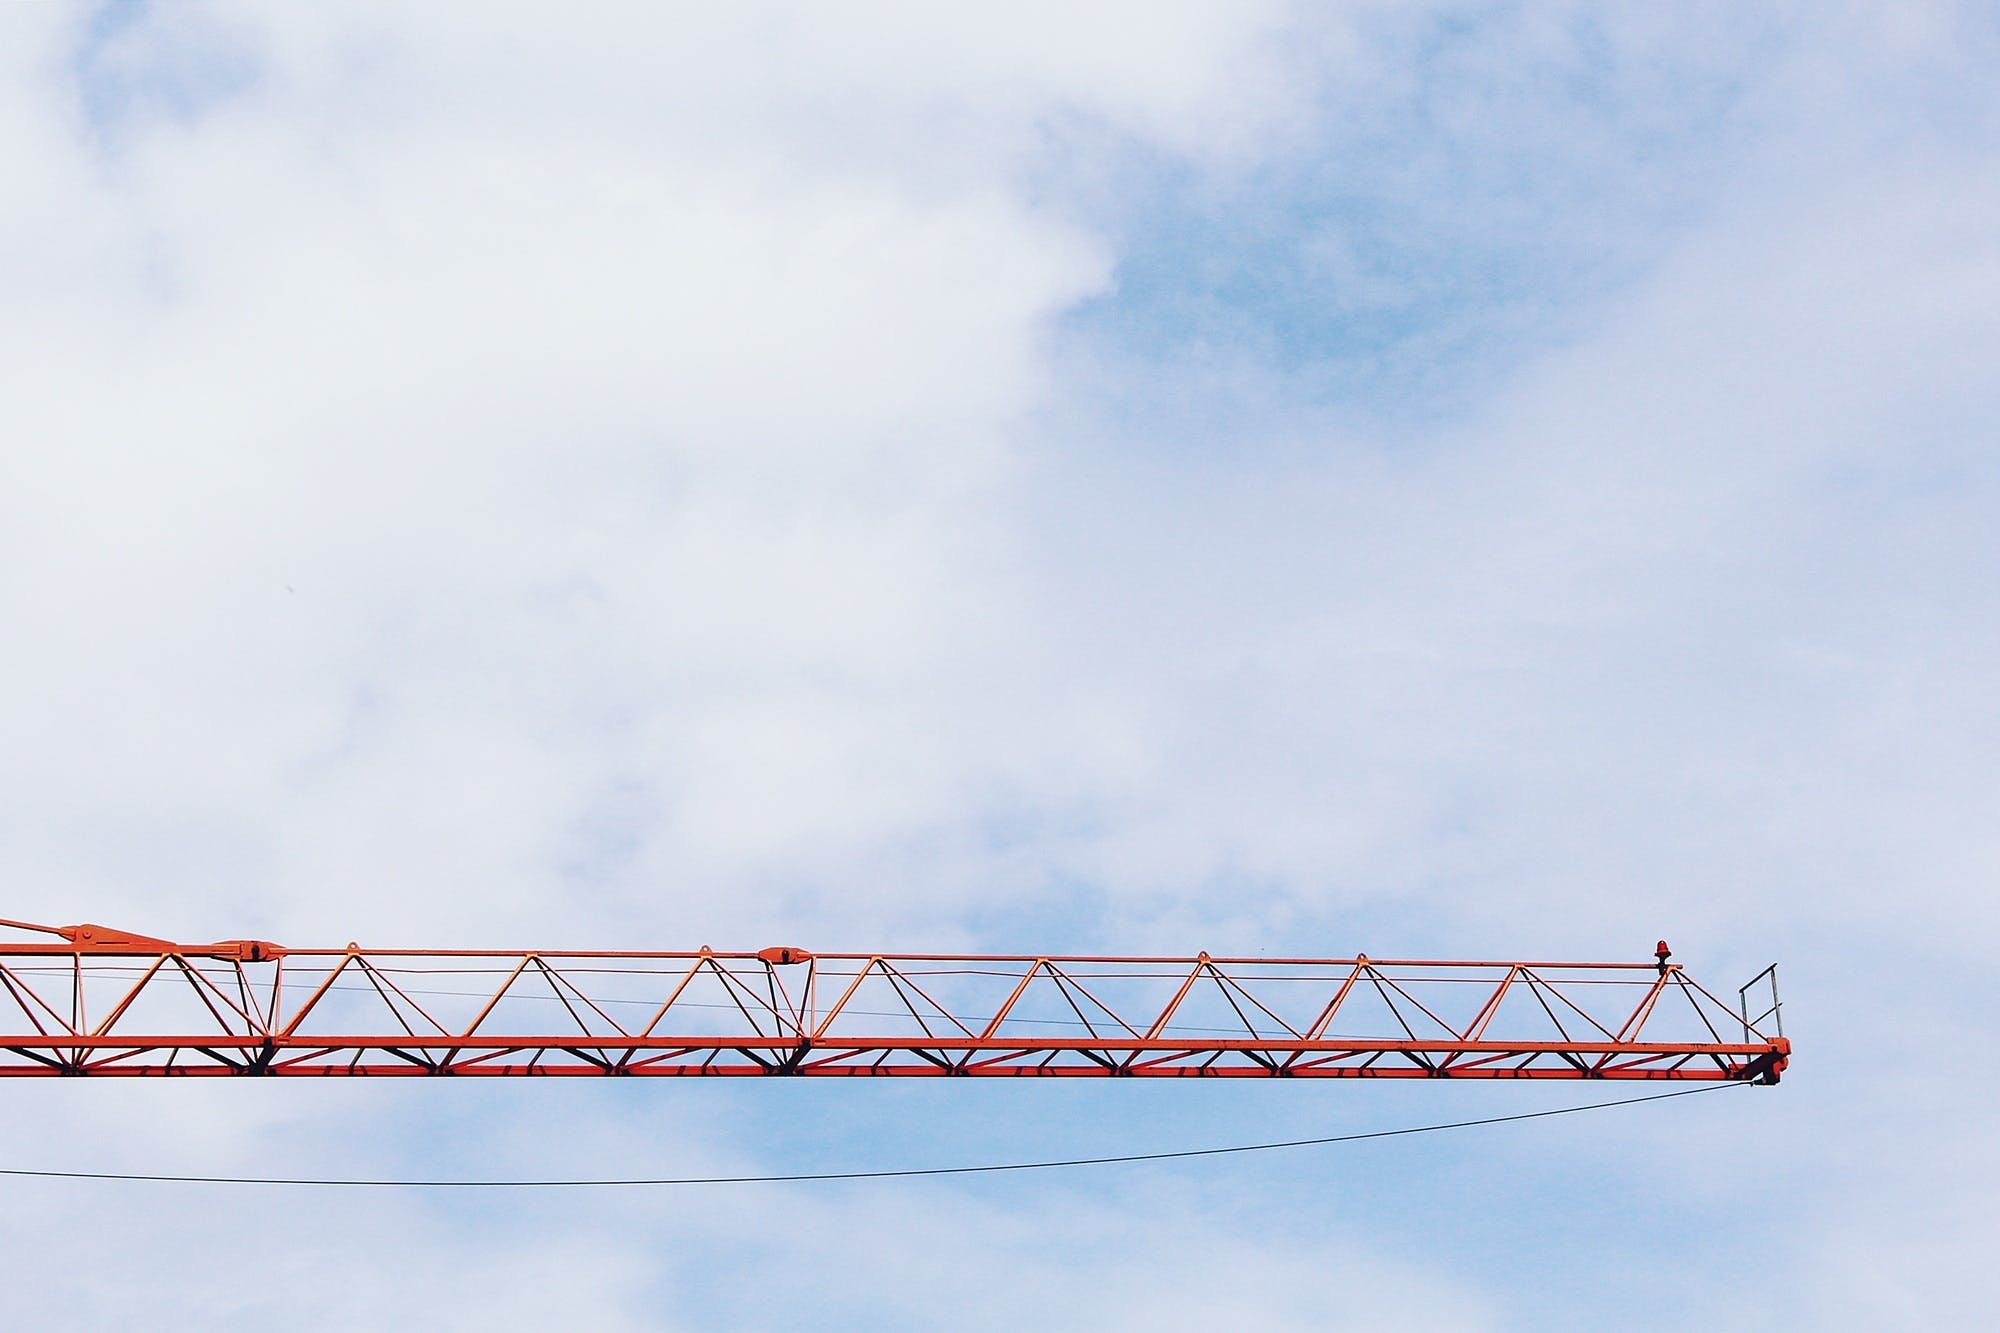 Red Crane Photo Under Cloudy Sky during Daytime